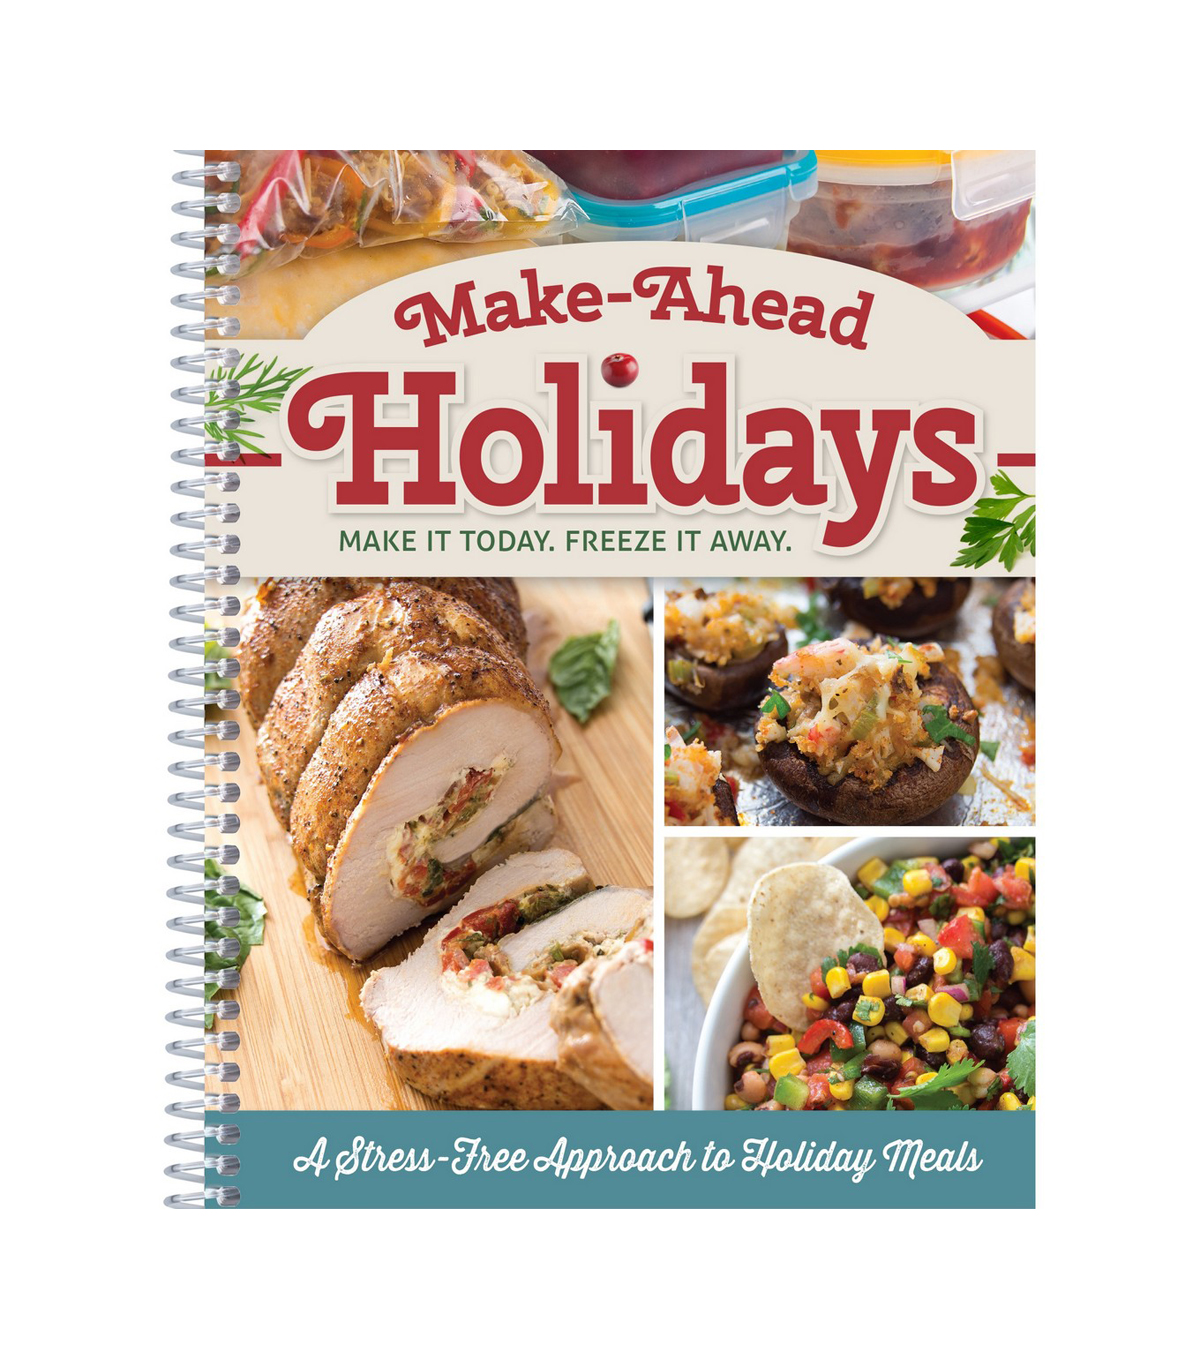 Make-Ahead Holidays Cookbook-Make It Today, Freeze It Away